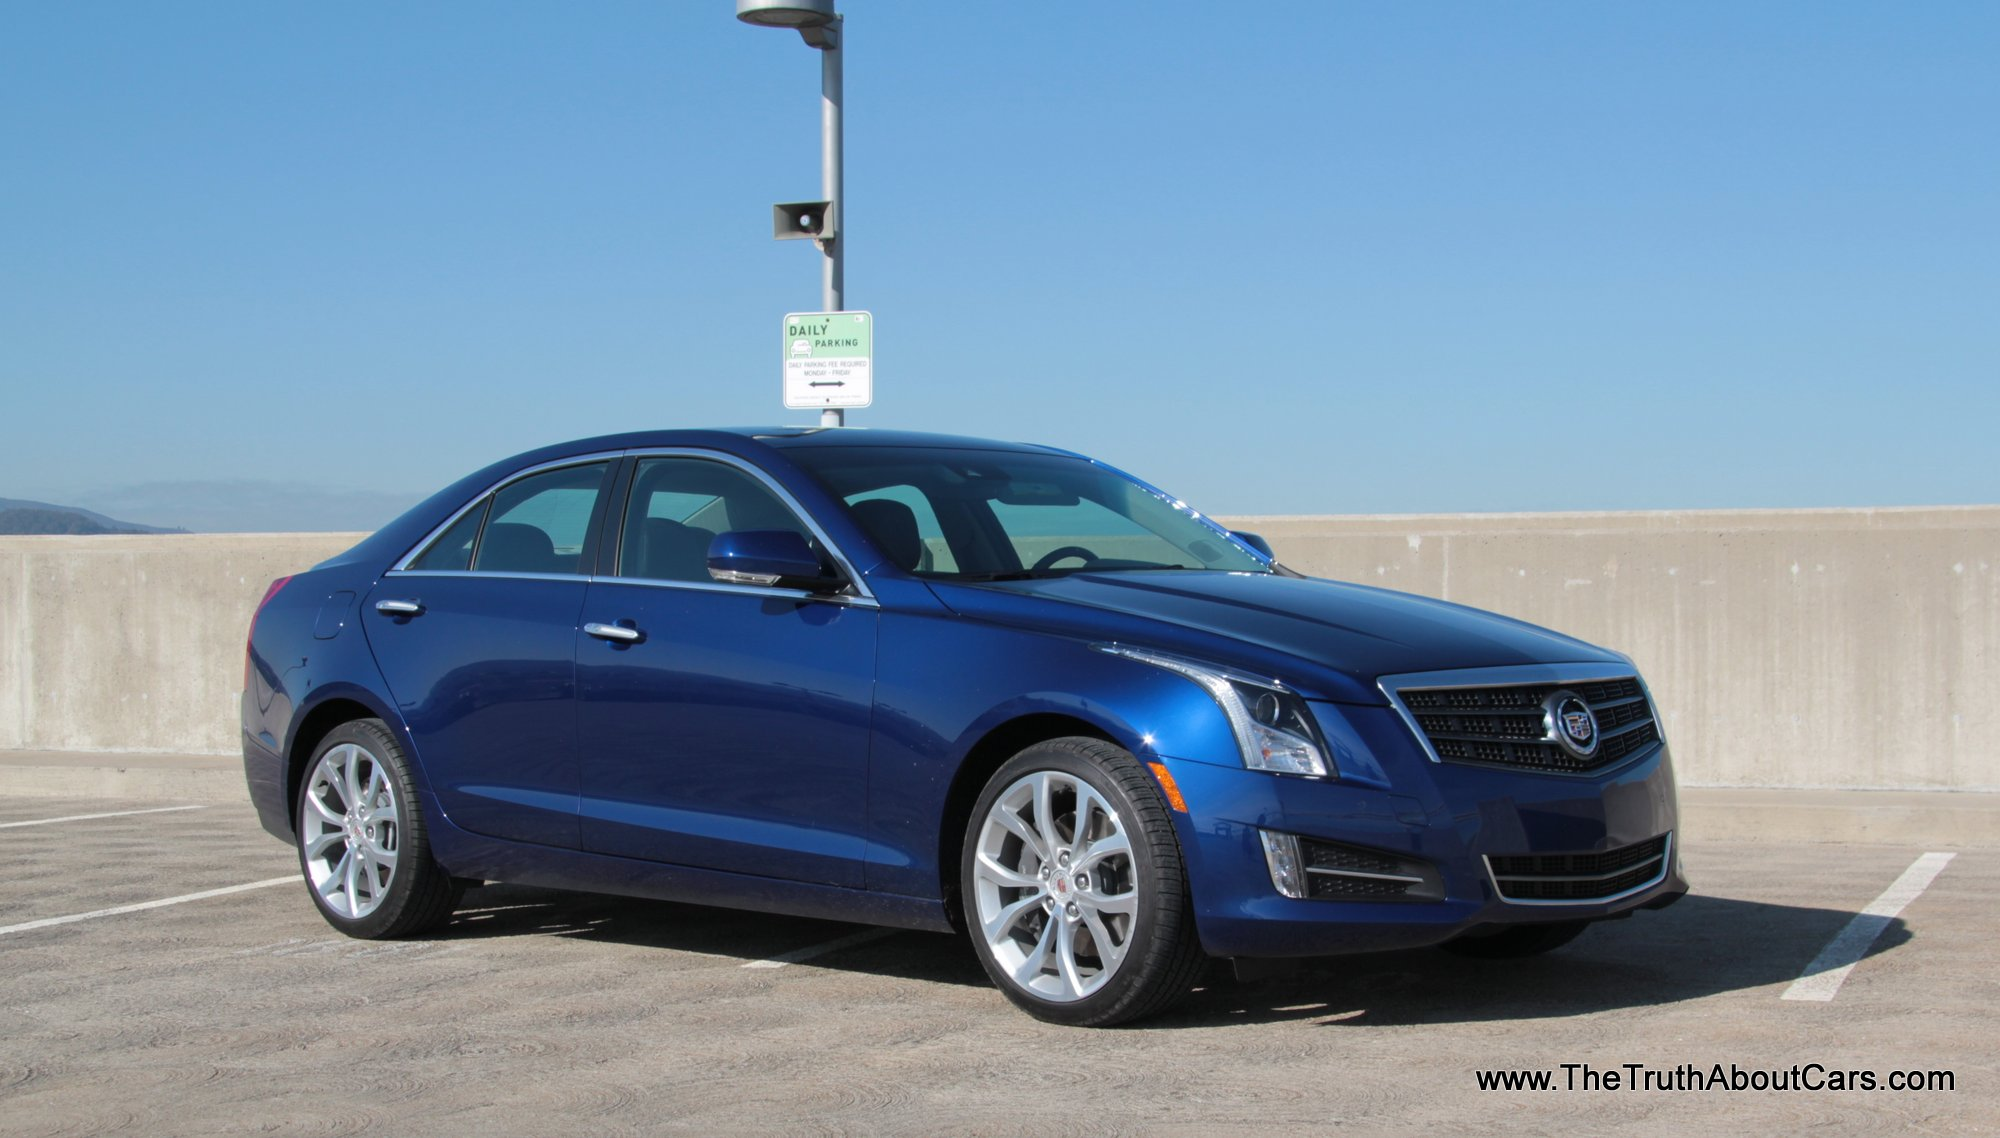 2013 cadillac ats 3 6 awd exterior side 3 4 picture courtesy of alex l dykes the truth. Black Bedroom Furniture Sets. Home Design Ideas